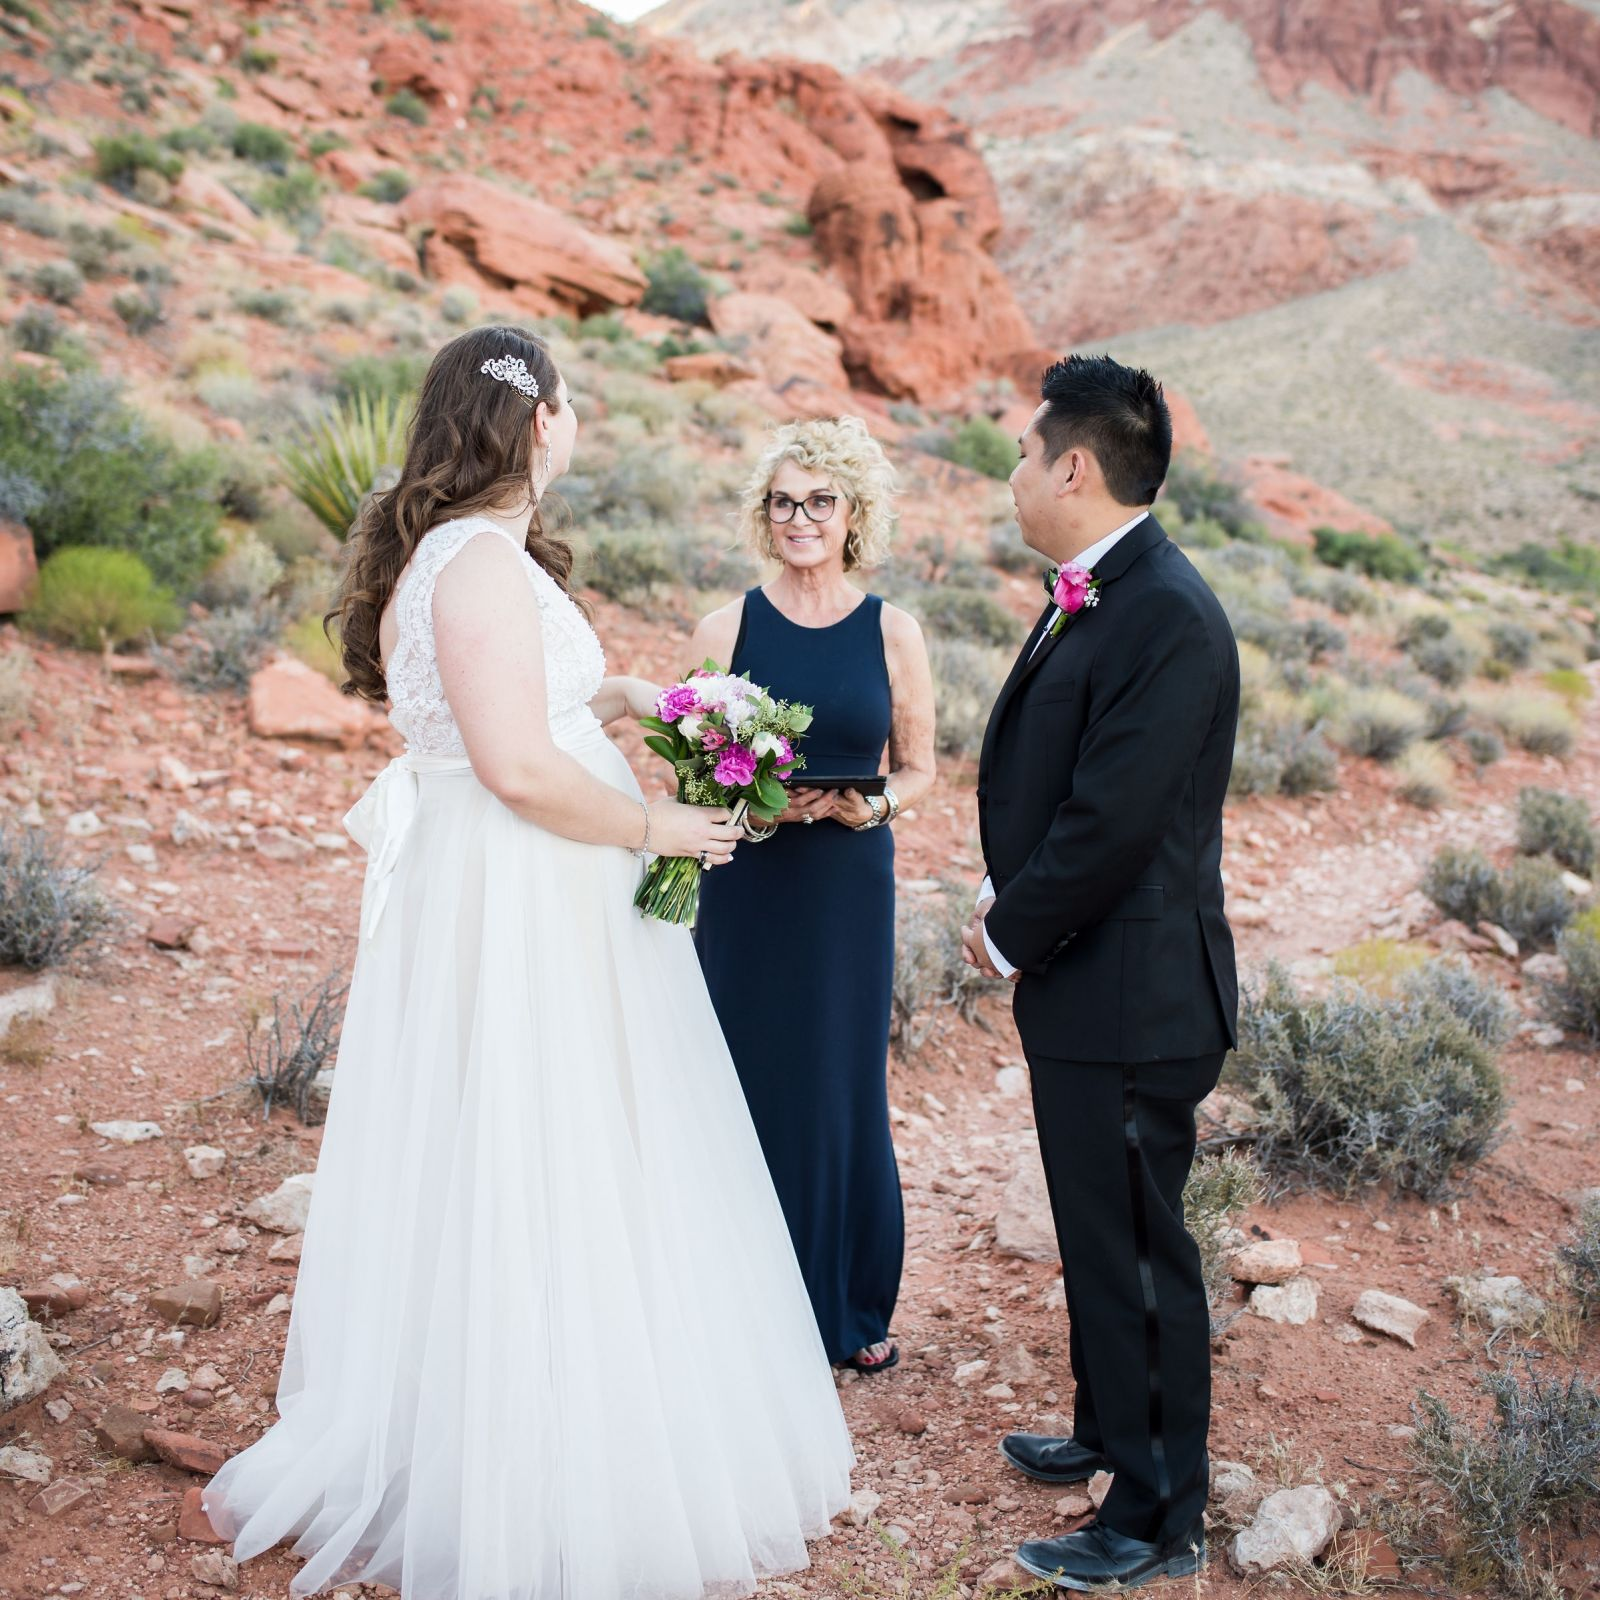 Las Vegas Wedding Officiant - Red Rock